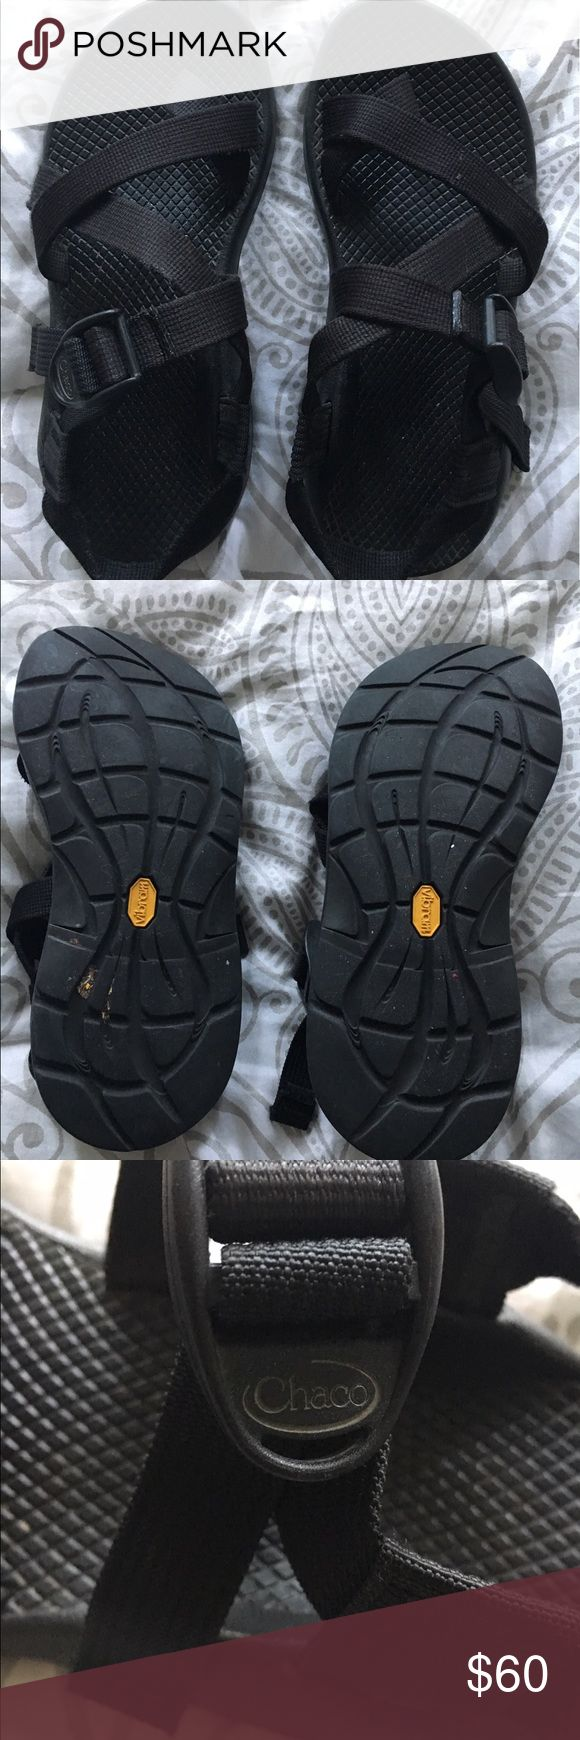 Women's Chaco Sandals Very clean, barely worn Chaco's. Comment if you have any questions! Chacos Shoes Sandals